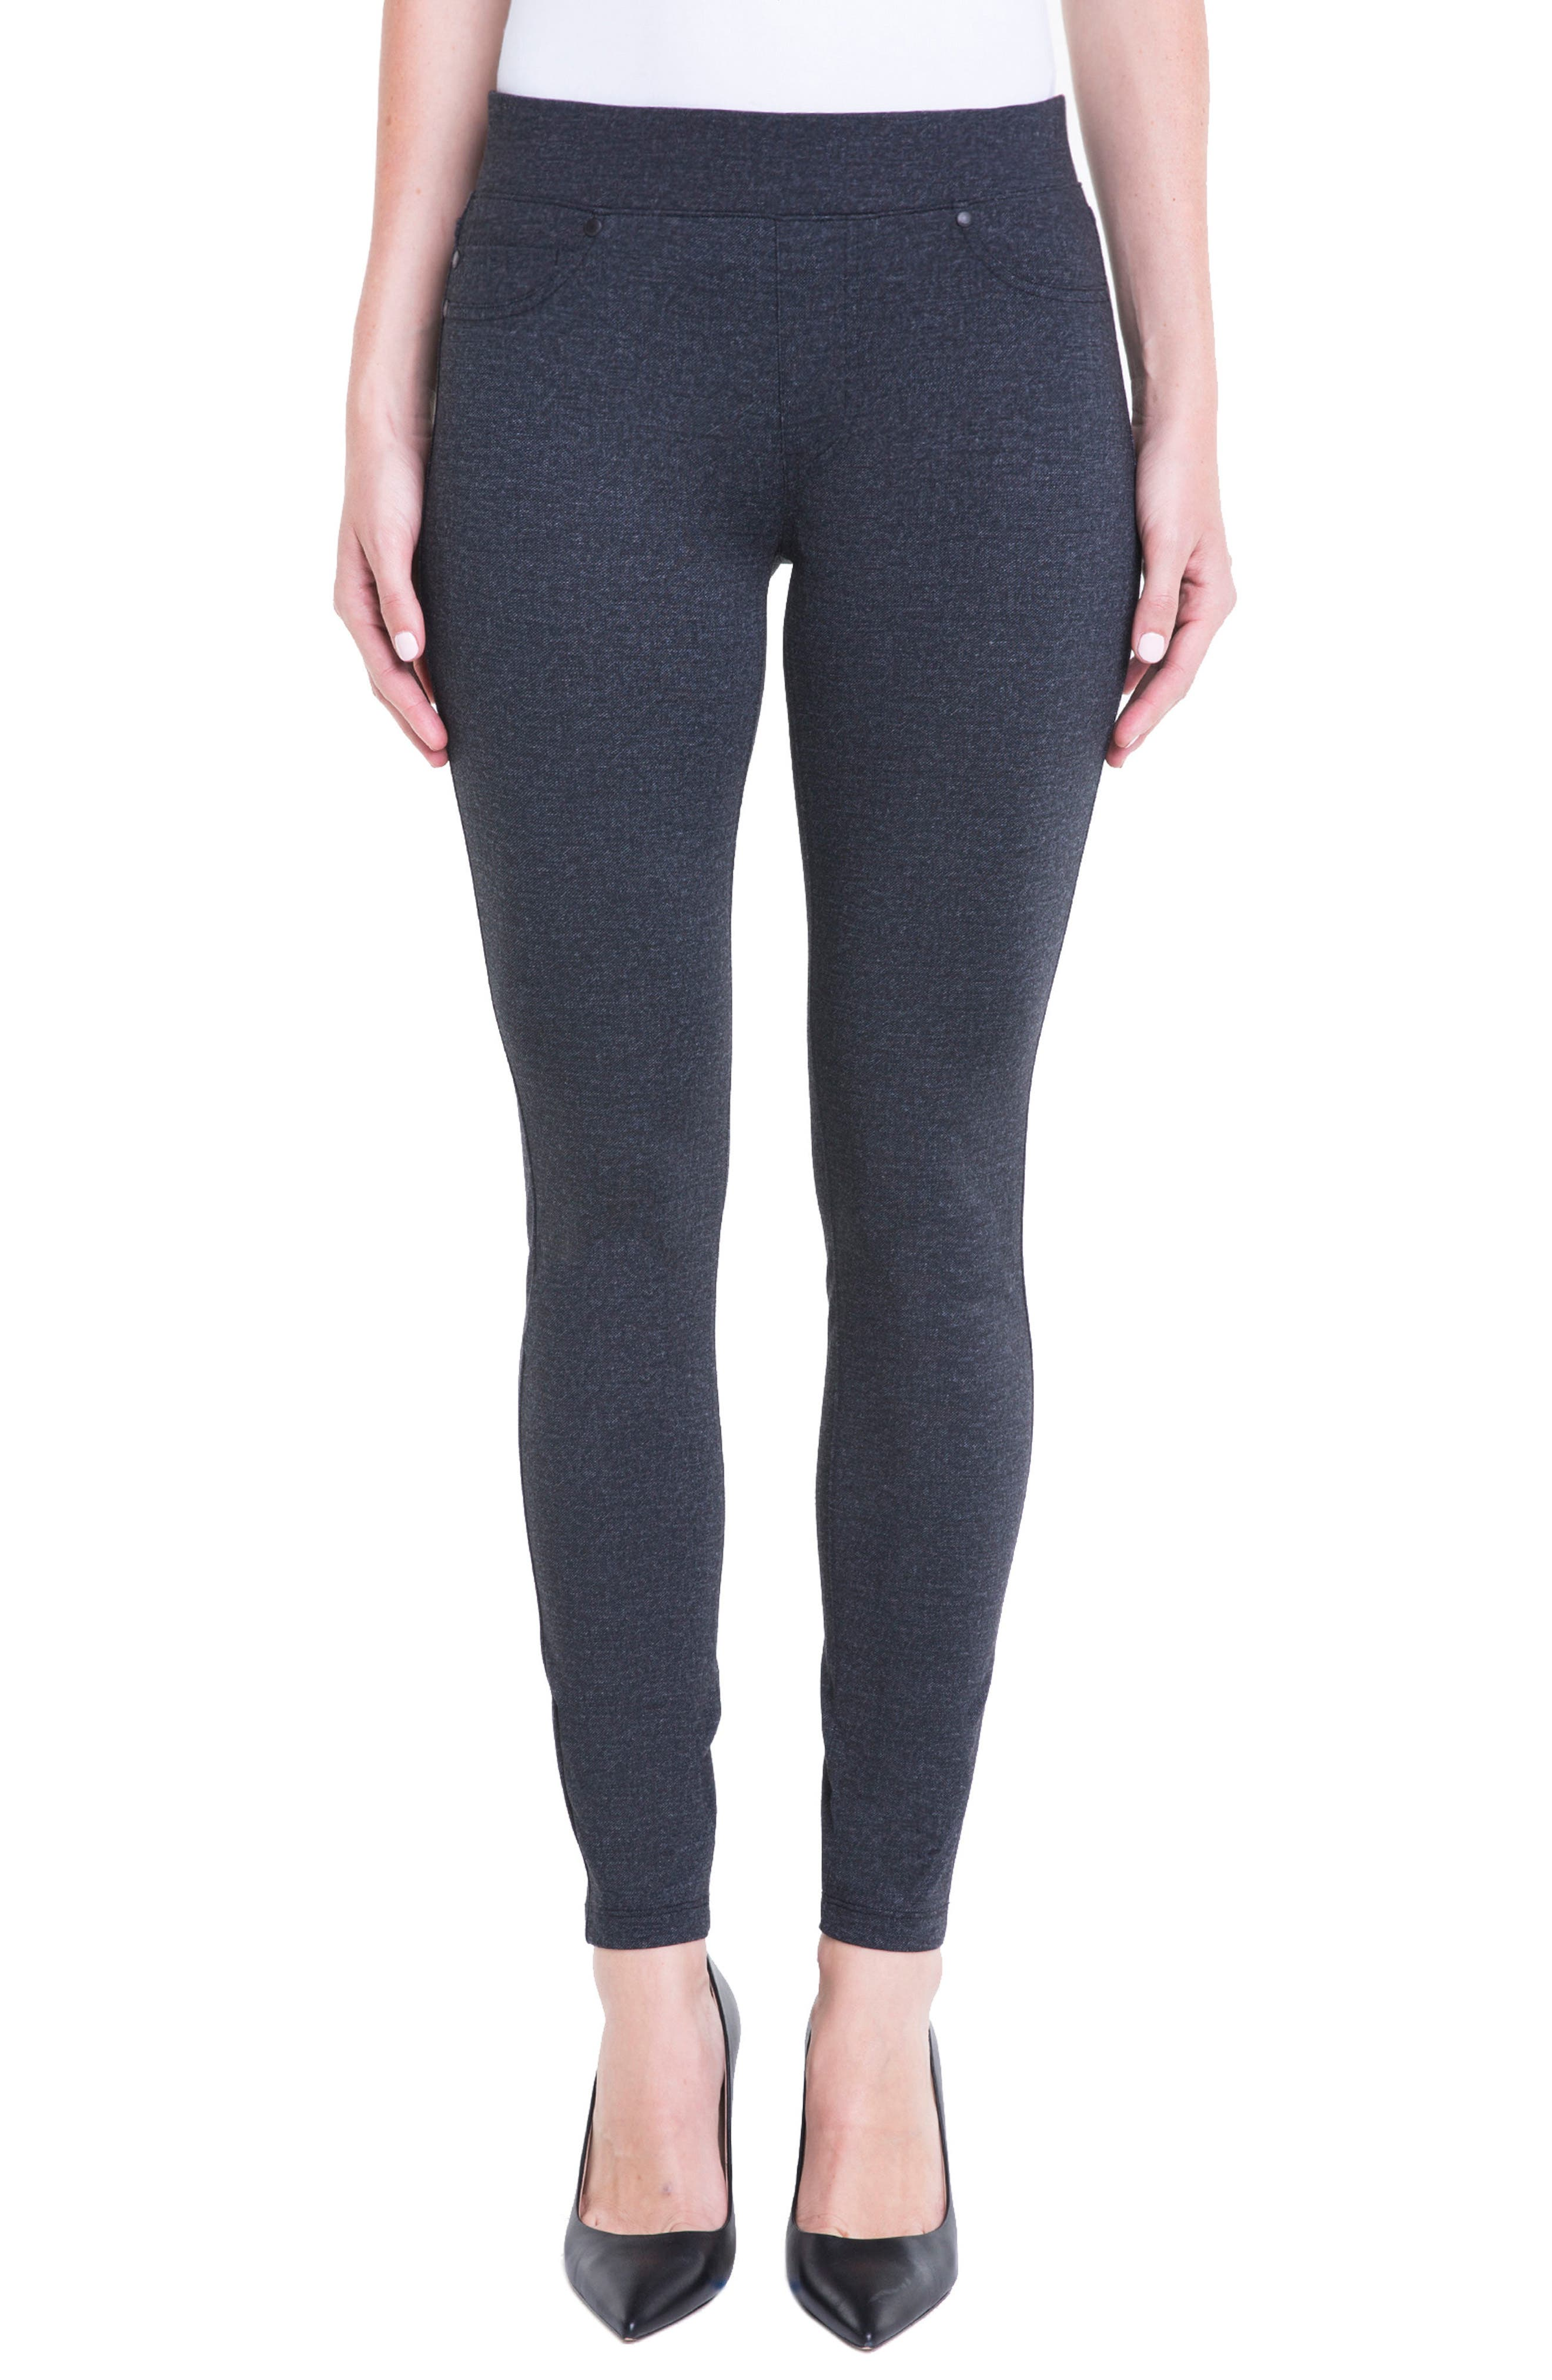 Liverpool Jeans Company Sienna Denim Knit Leggings